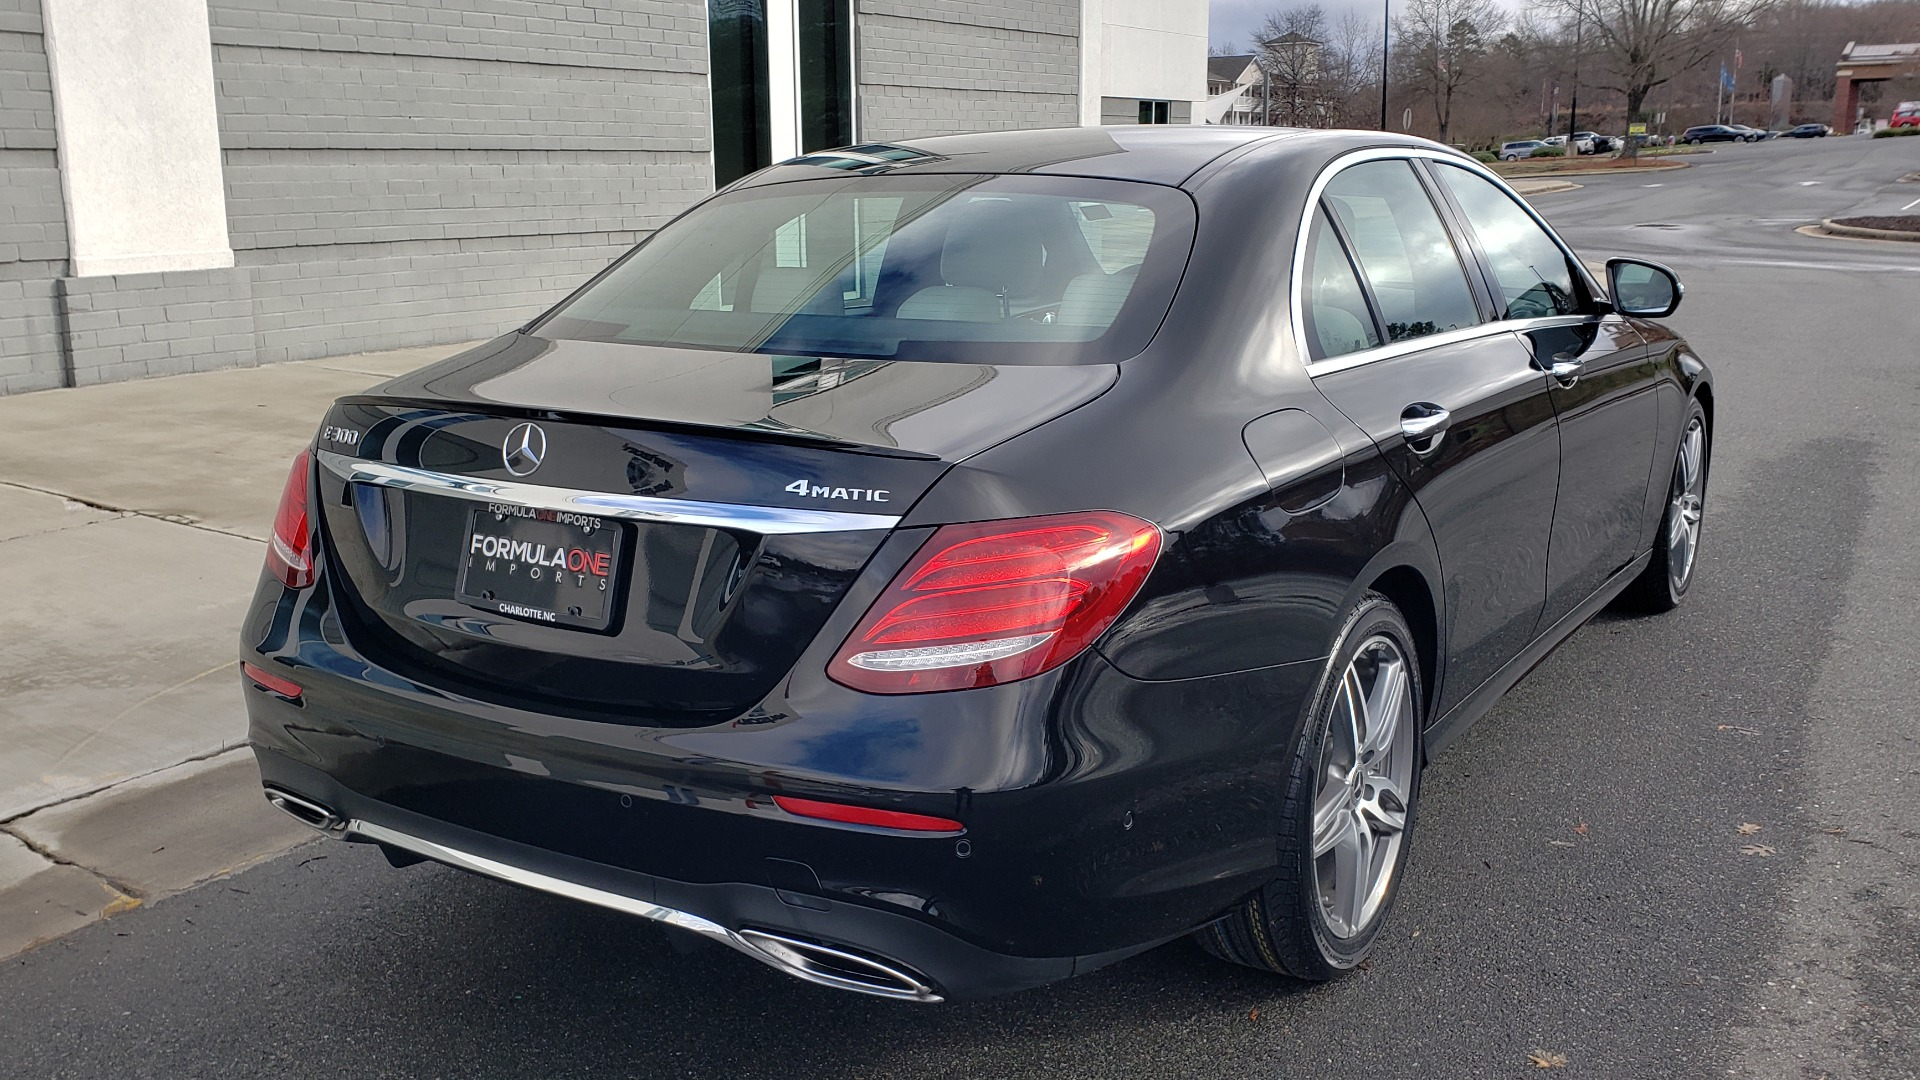 Used 2018 Mercedes-Benz E-CLASS E 300 PREM PKG 2 / NAV / PANO-ROOF / WARMTH & COMFORT PKG for sale $35,295 at Formula Imports in Charlotte NC 28227 4